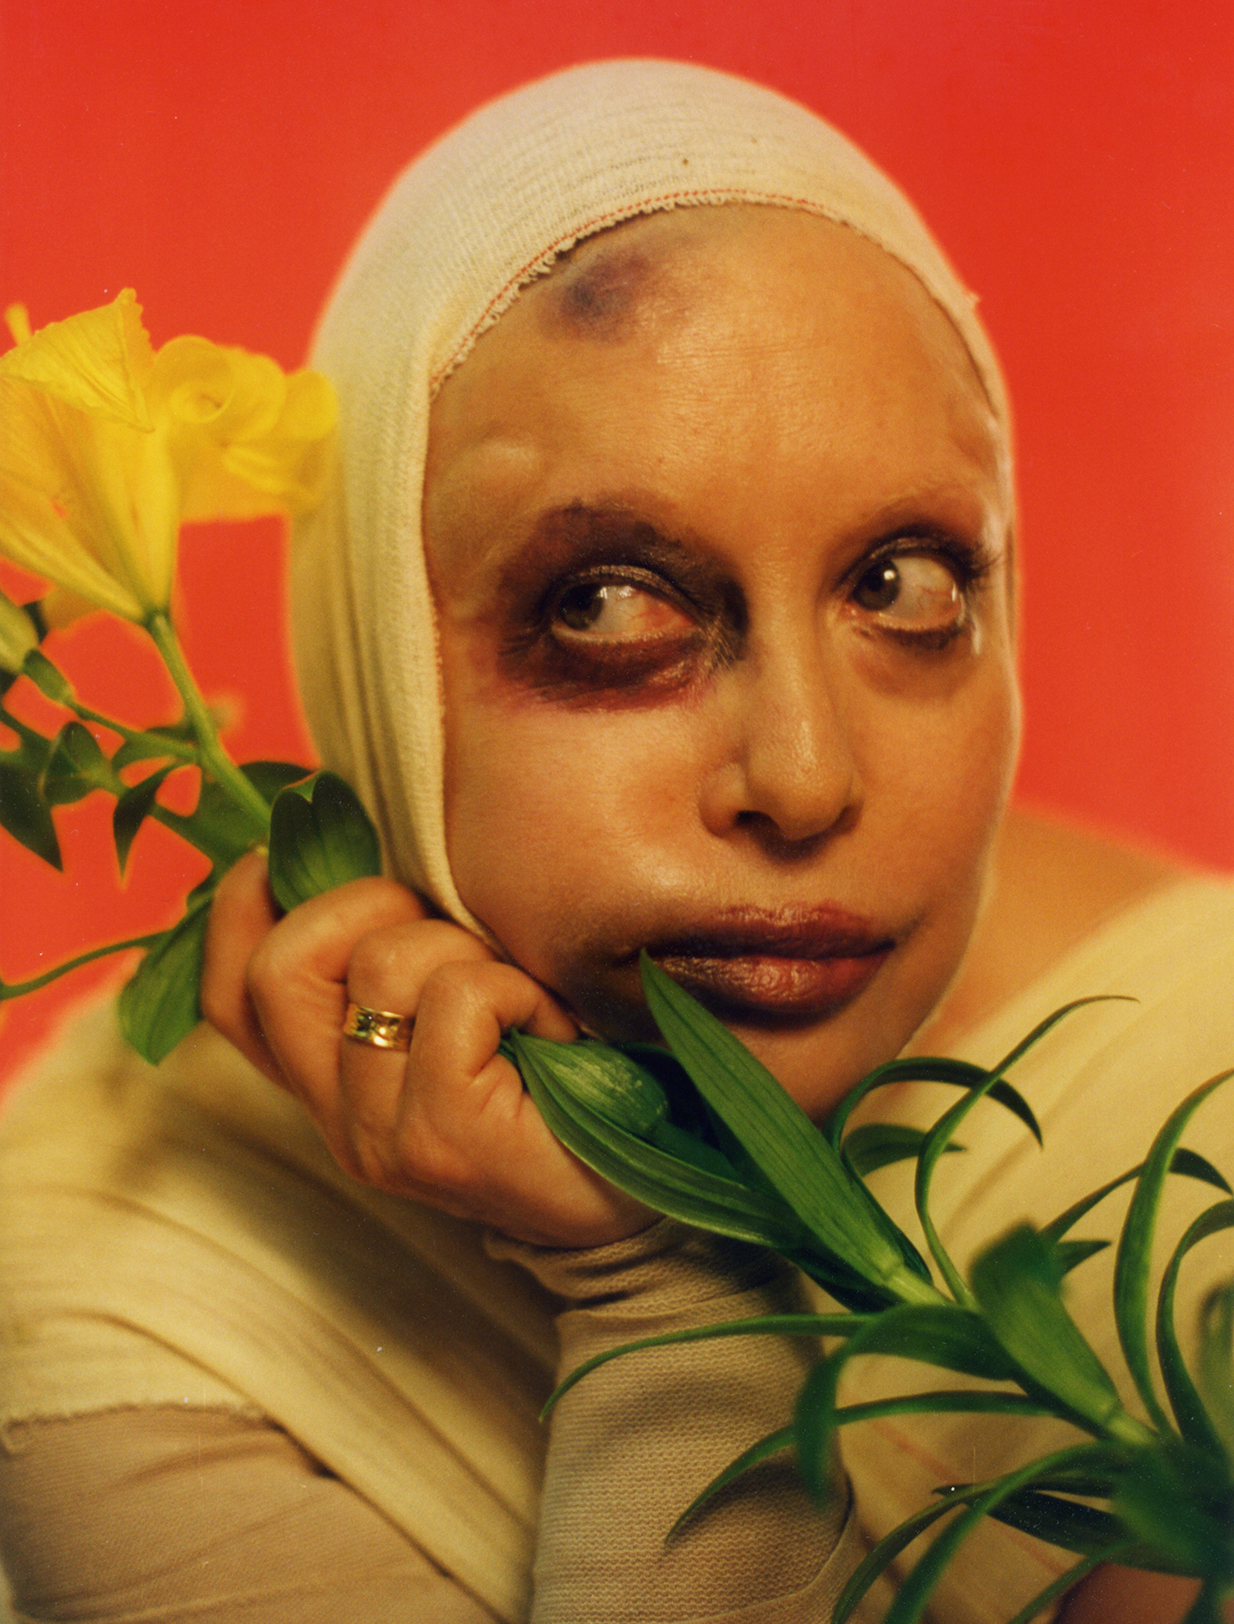 Orlan, photographed in 1997 (image via Wikipedia) (click to enlarge)